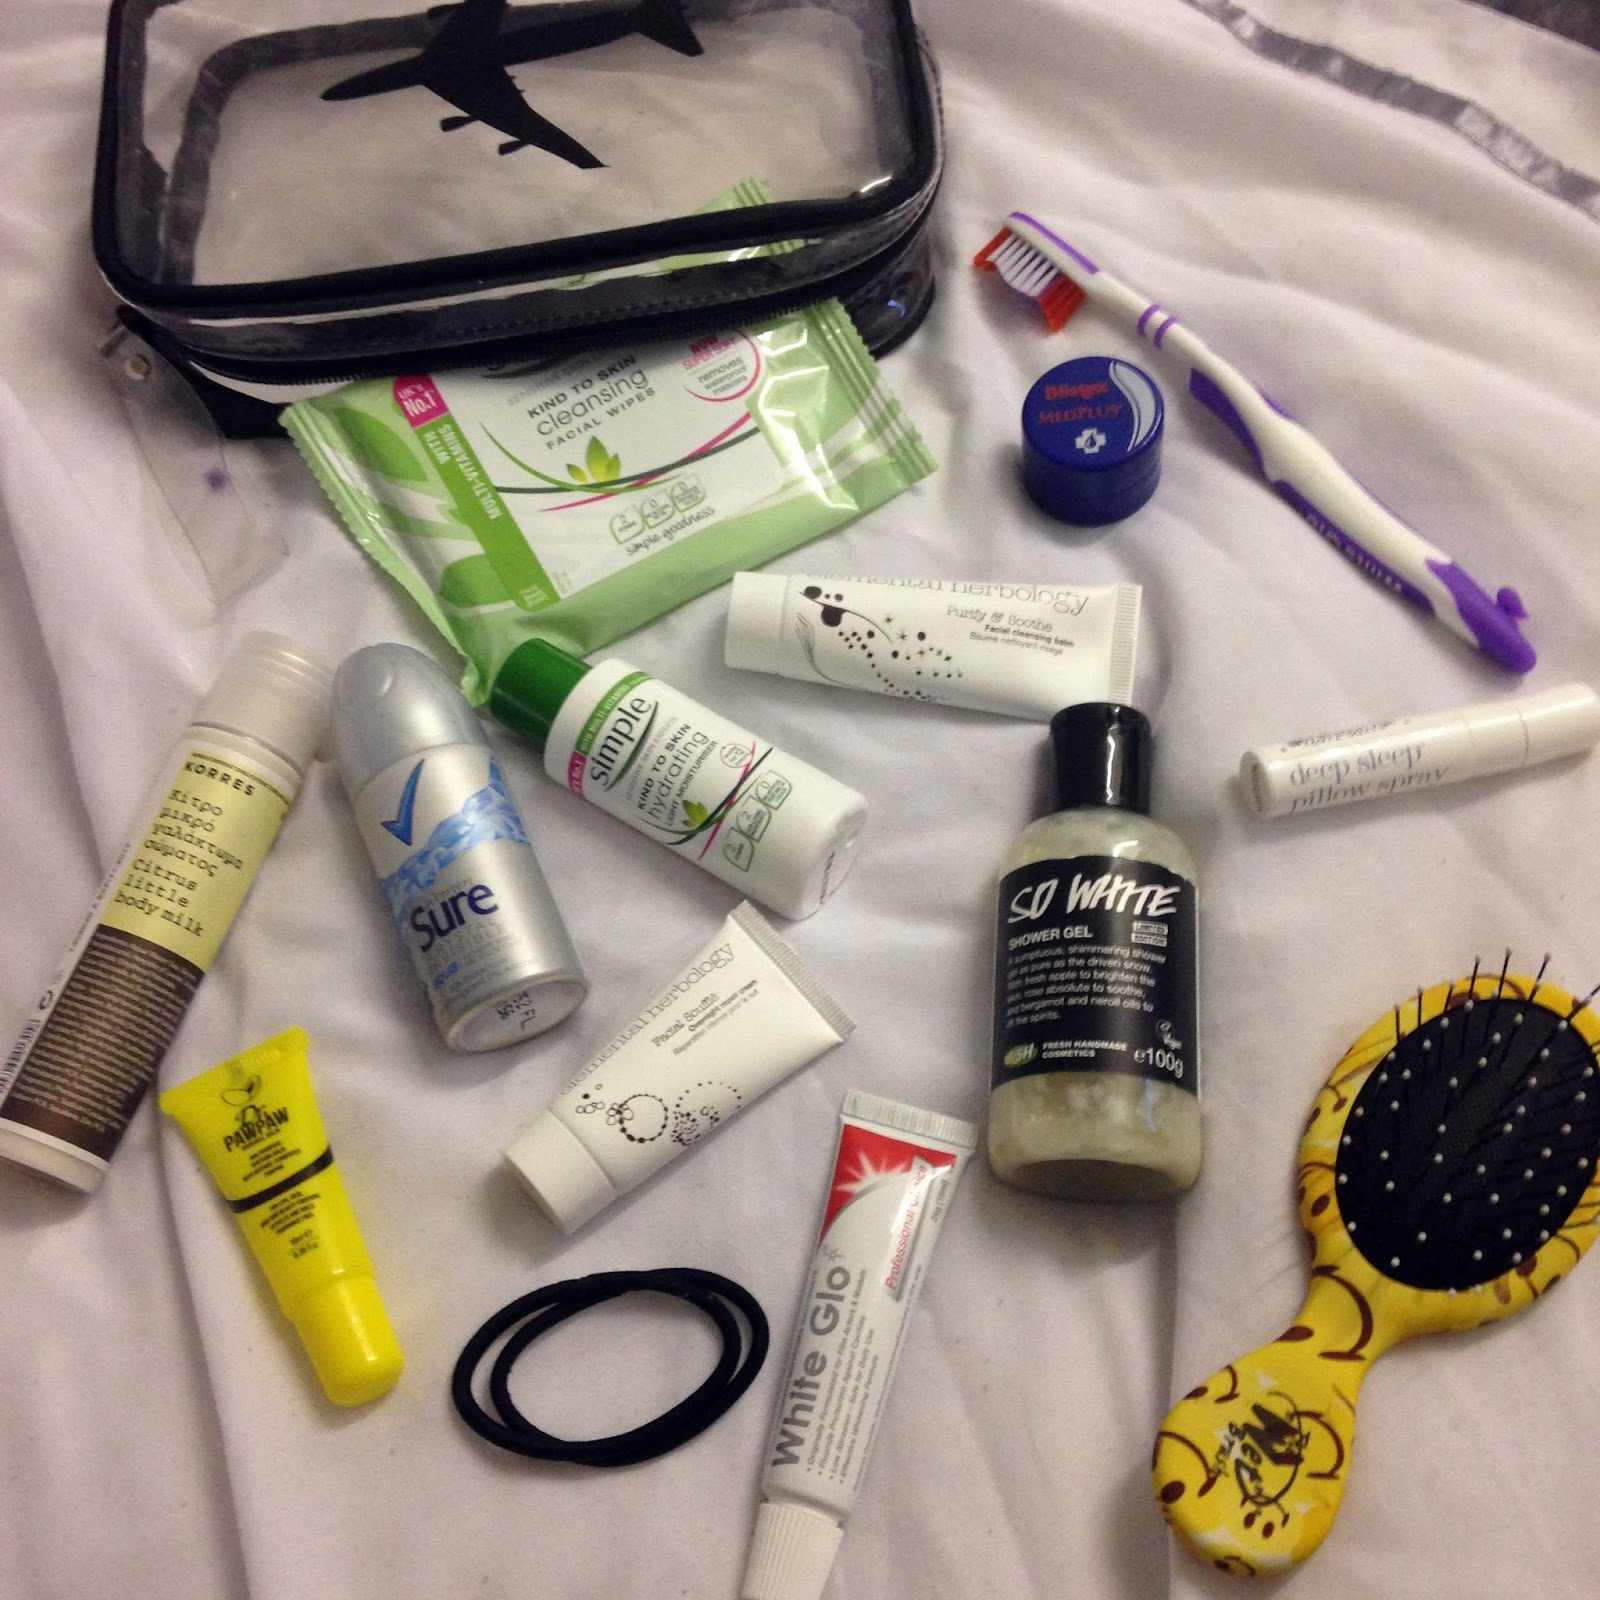 Whats in my hospital bag? beauty